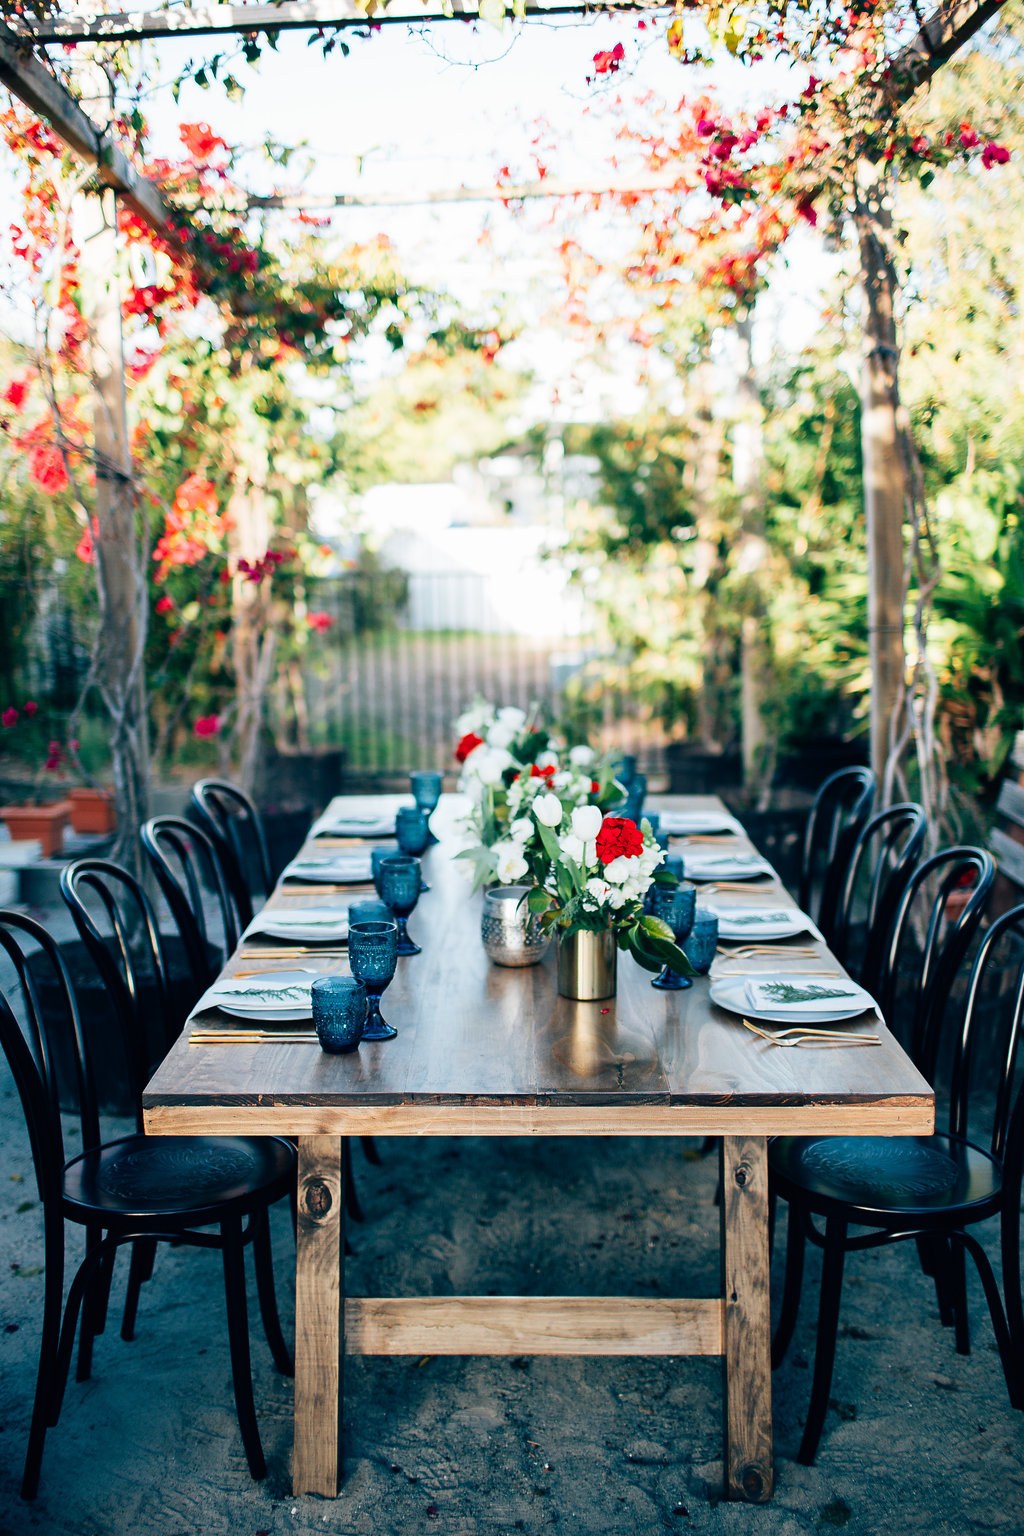 ostHampton Event Hire - Wedding and Event Hire | Christmas Table Styling Inspiration at Osteria Casuarina | Black Bentwood Chairs and Feasting Tables | www.hamptoneventhire.com | Photo by Figtree Pictures